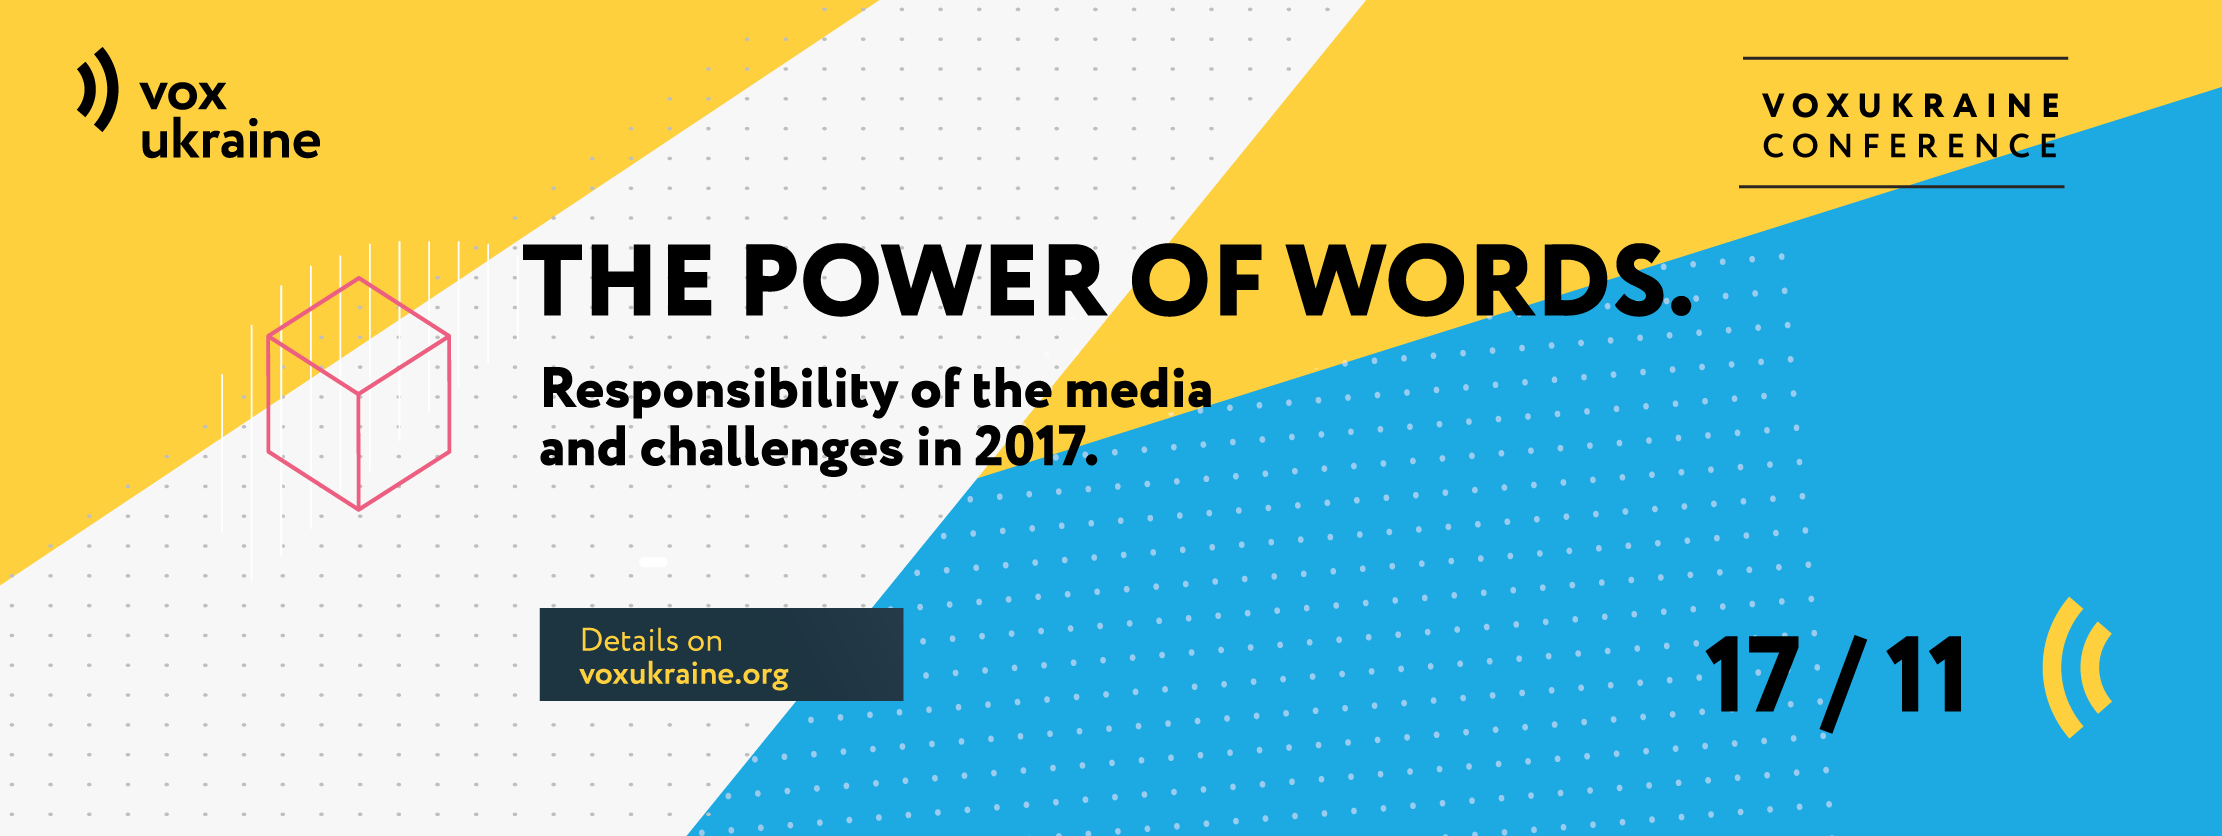 The Power of Words. Responsibility of Media and Challenges-2017